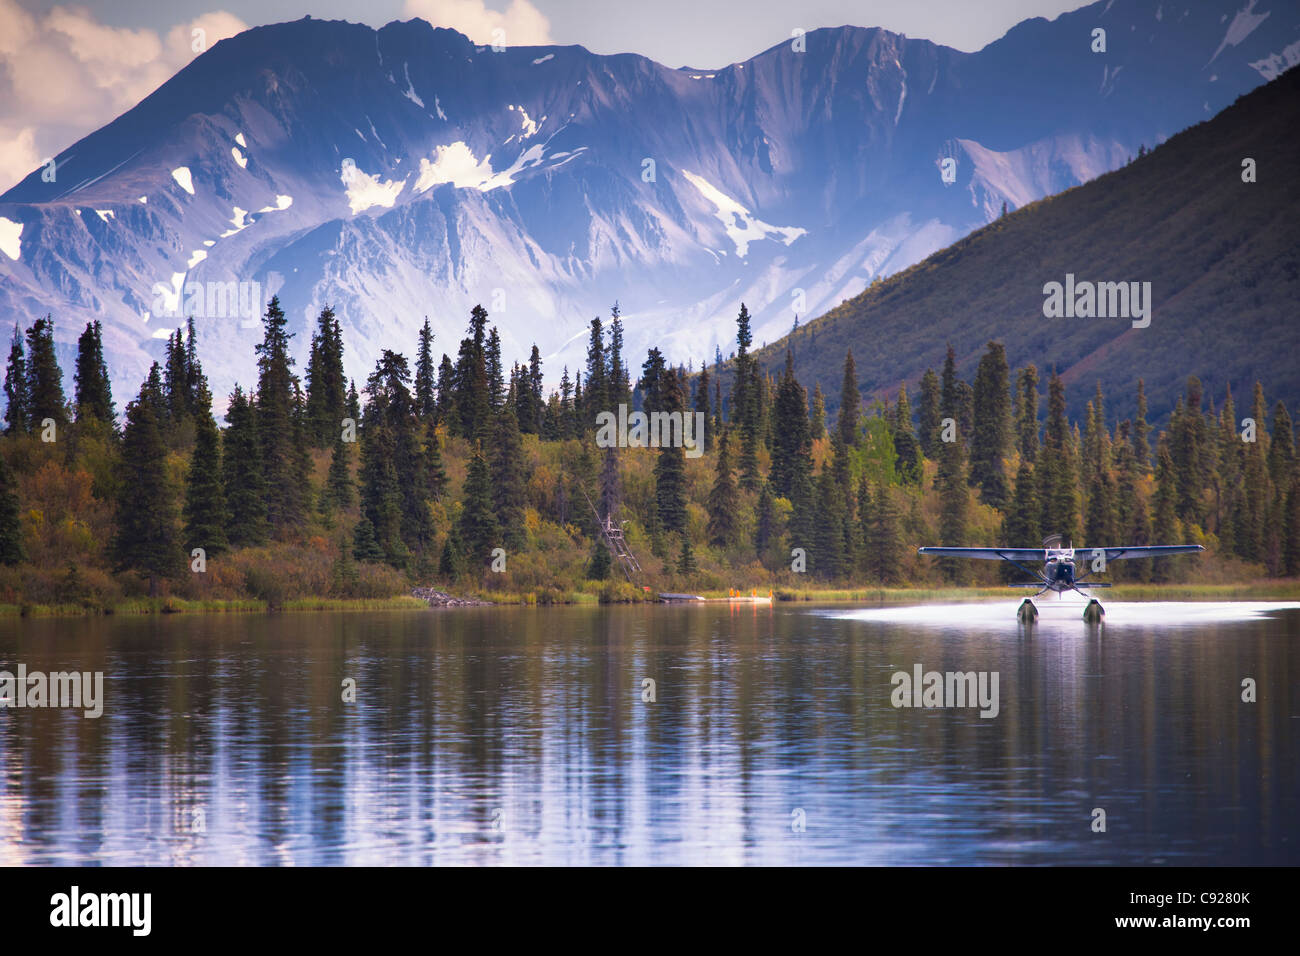 A Cessna 206 on floats lands on Puntilla Lake near Rainy Pass Lodge with mountains and fall colors in the background, - Stock Image